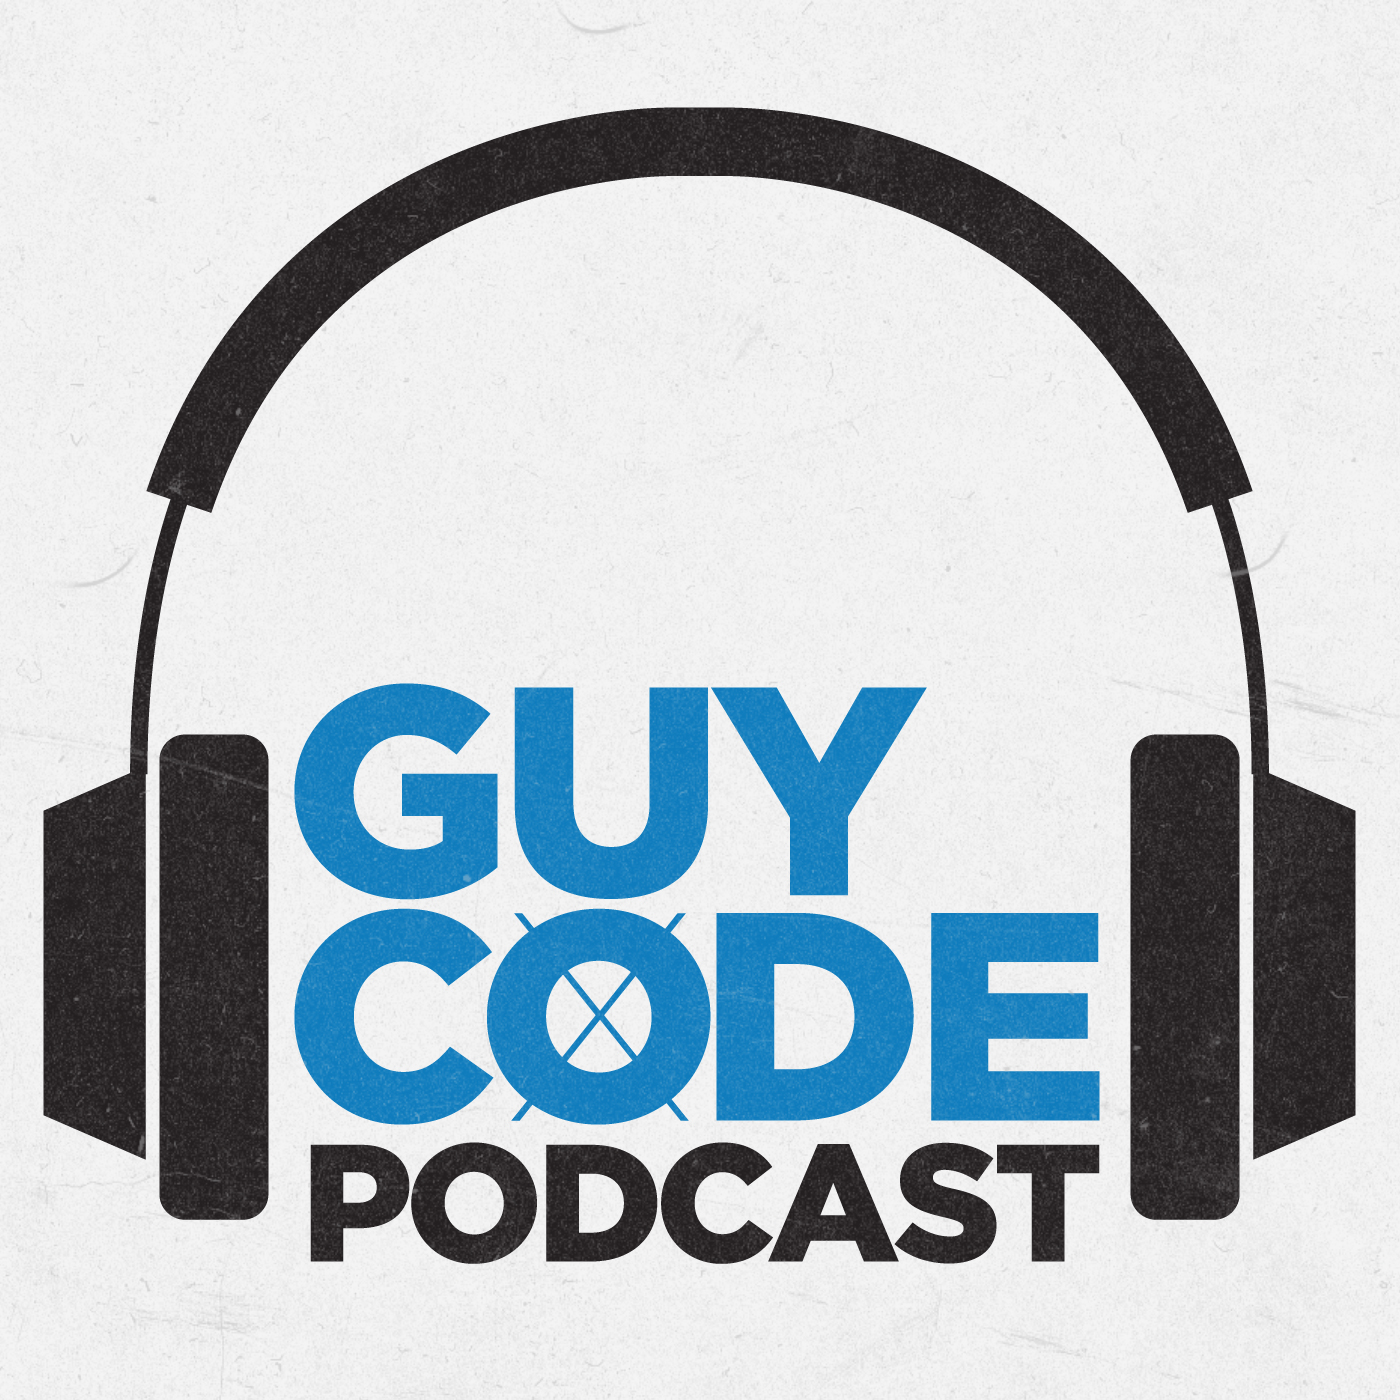 <![CDATA[Guy Code Podcast]]>